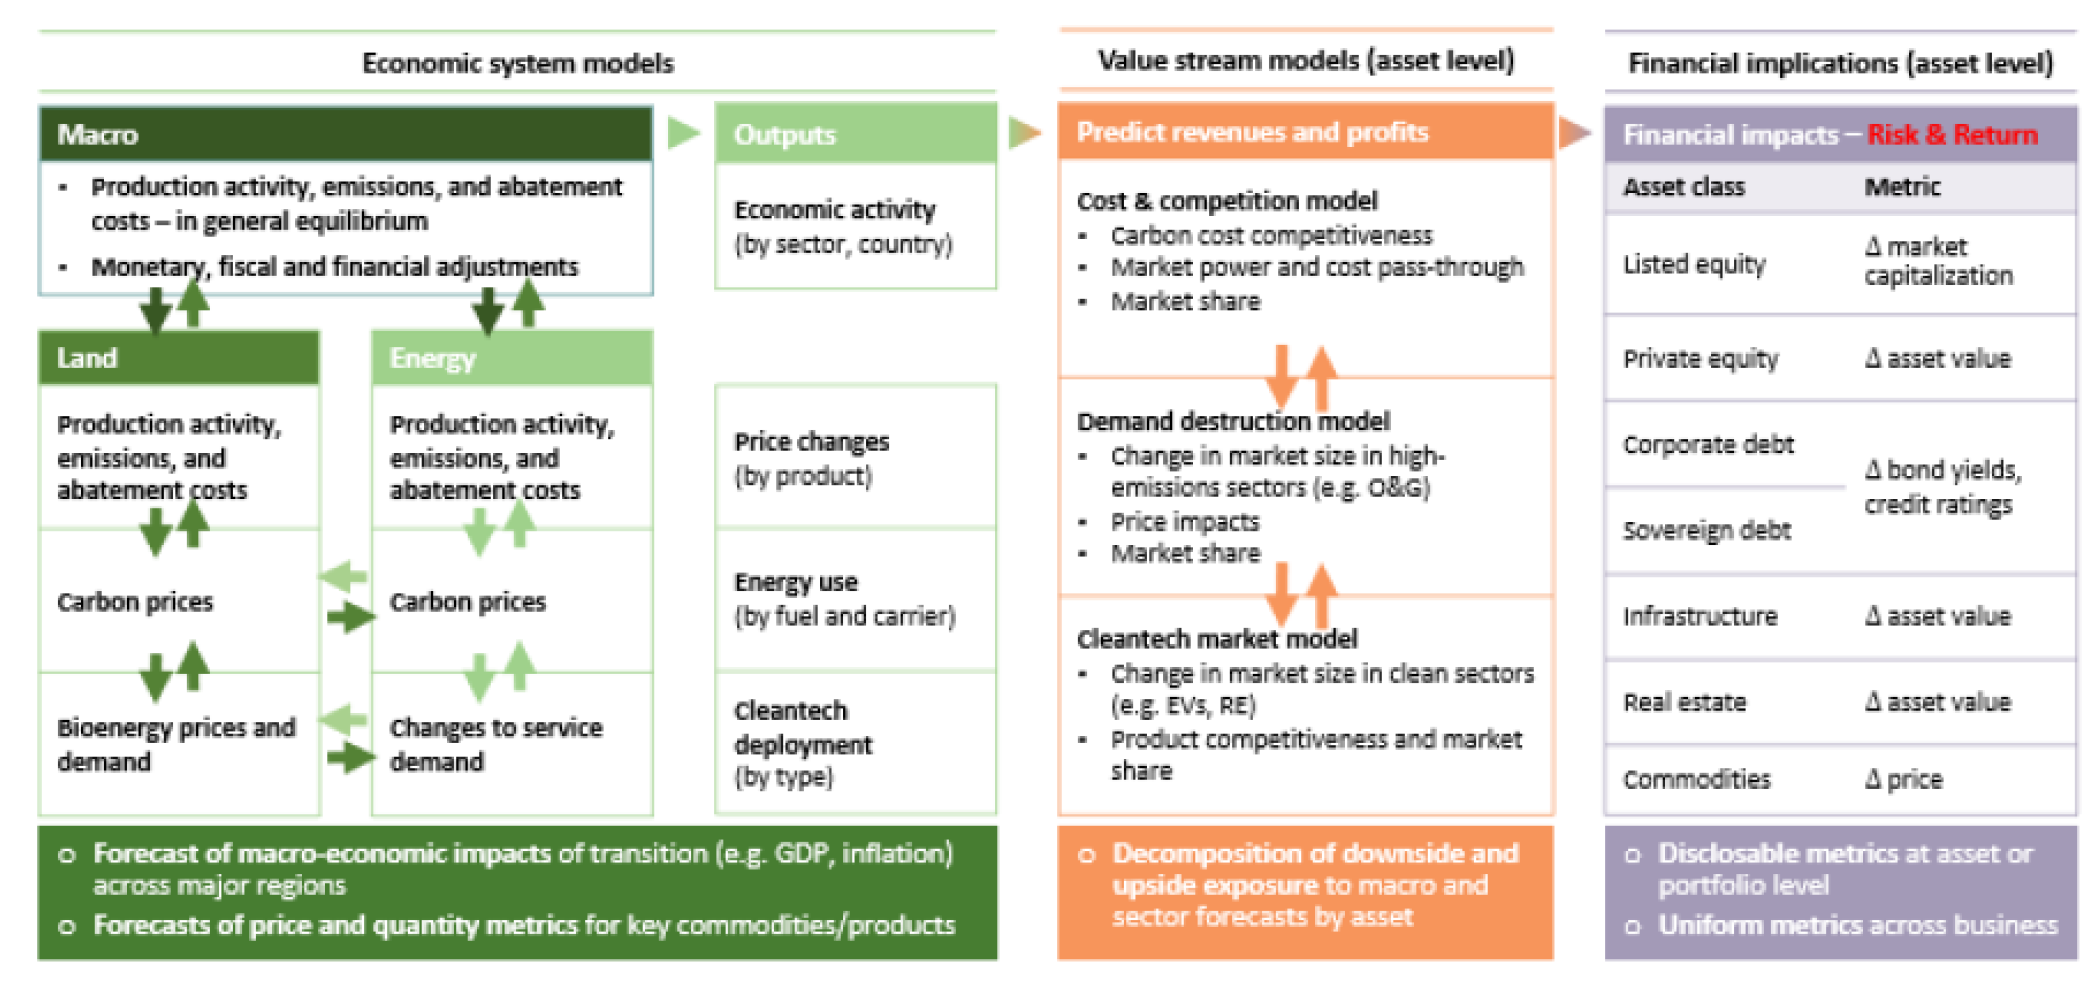 Source: UNPRI (2019)  The Inevitable Policy Response Preparing financial markets for climate-related policy/regulatory risks ,  Available at:  https://www.unpri.org/download?ac=7084  (Accessed: 8th October 2019).